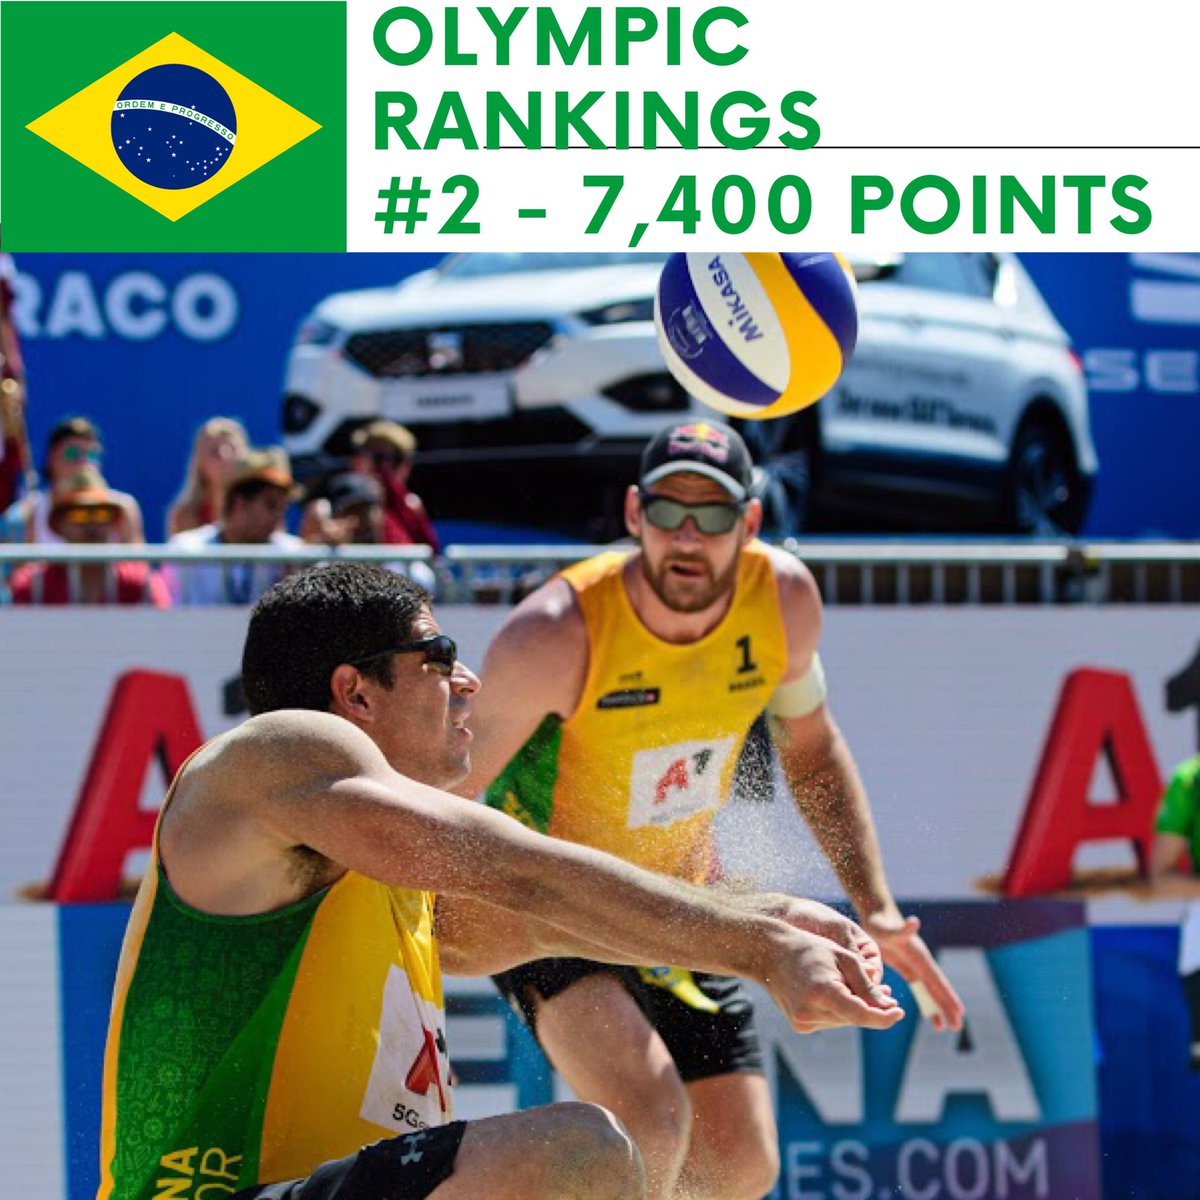 The second men's team in the current #Olympic rankings is the defending  winner Alison Cerutti and his new partner the electrifying Alvaro Filho. #RoadToTokyo #beachvolleyball #brasil #voleidepraia pic.twitter.com/ZCVkdHo8oU